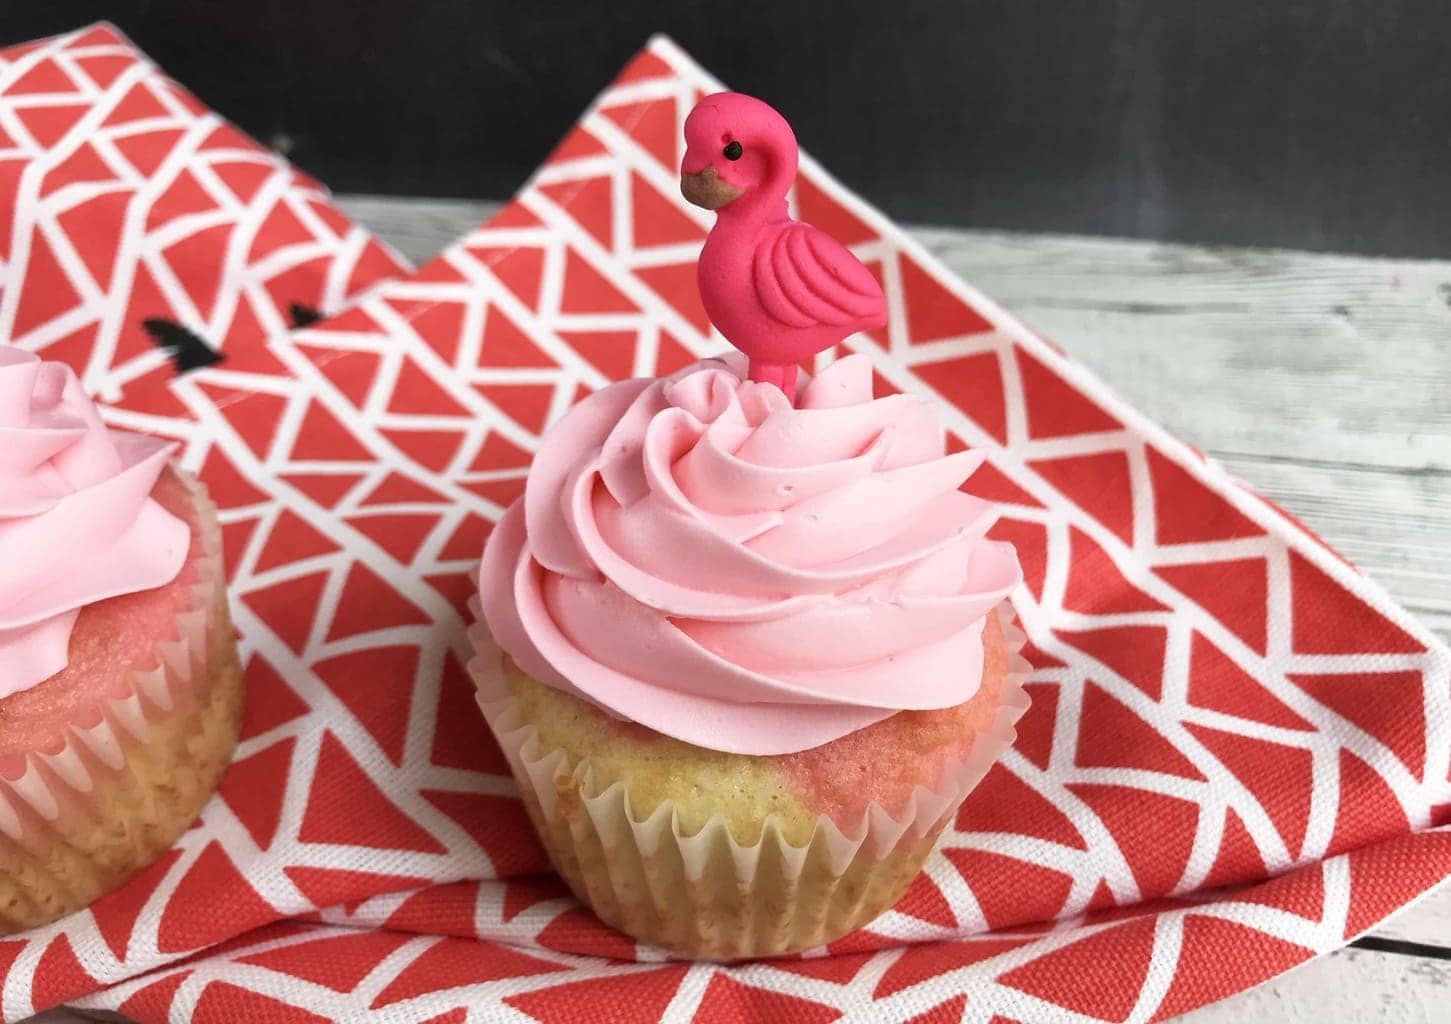 flamingo cupcakes with pink icing and a flamingo candy on top